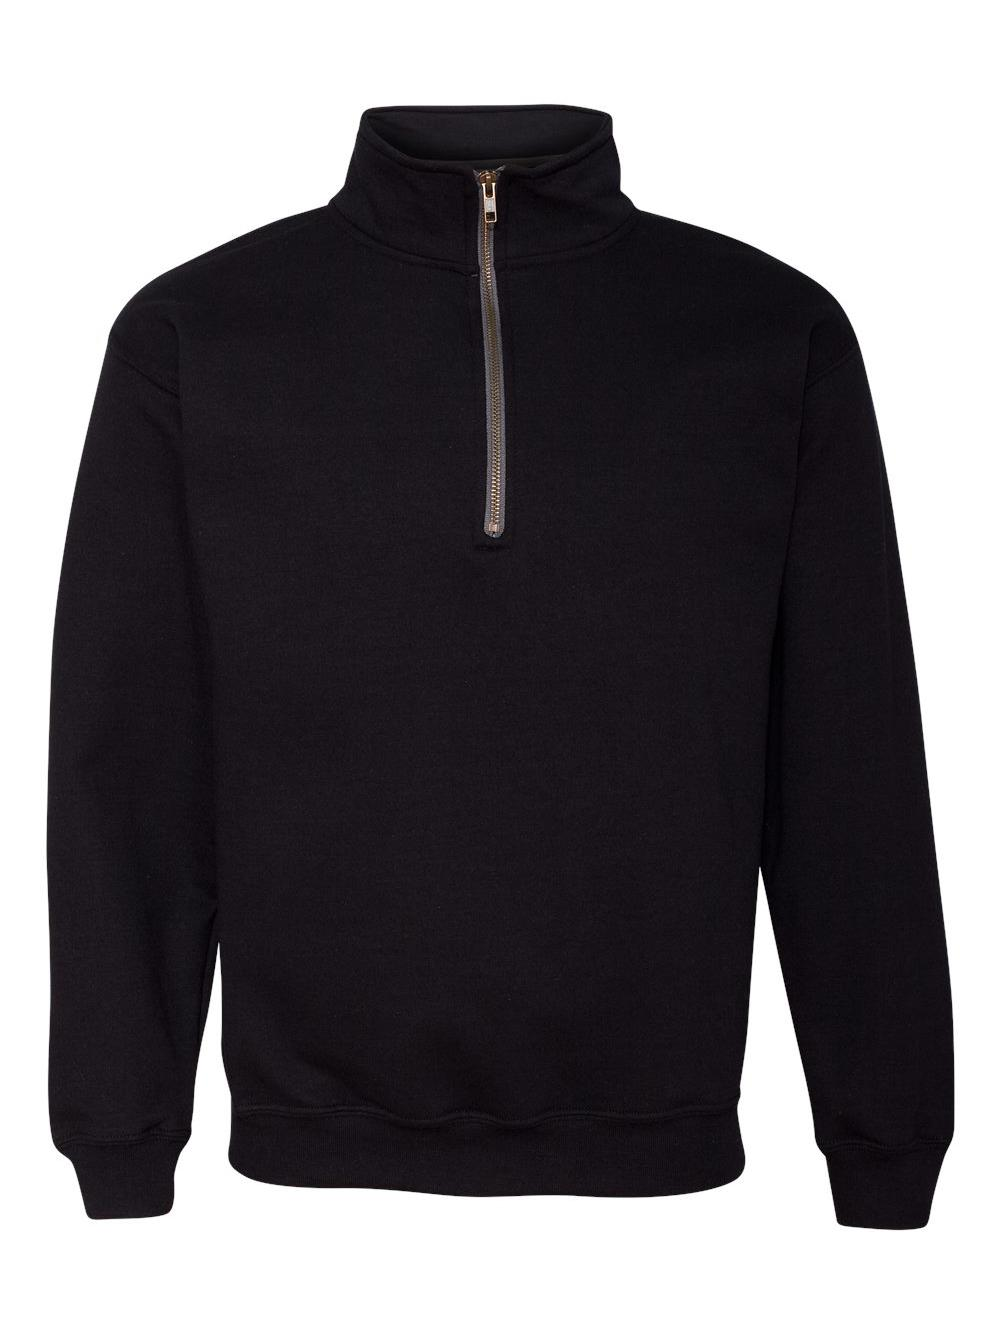 Gildan-Heavy-Blend-Quarter-Zip-Cadet-Collar-Sweatshirt-18800 thumbnail 3